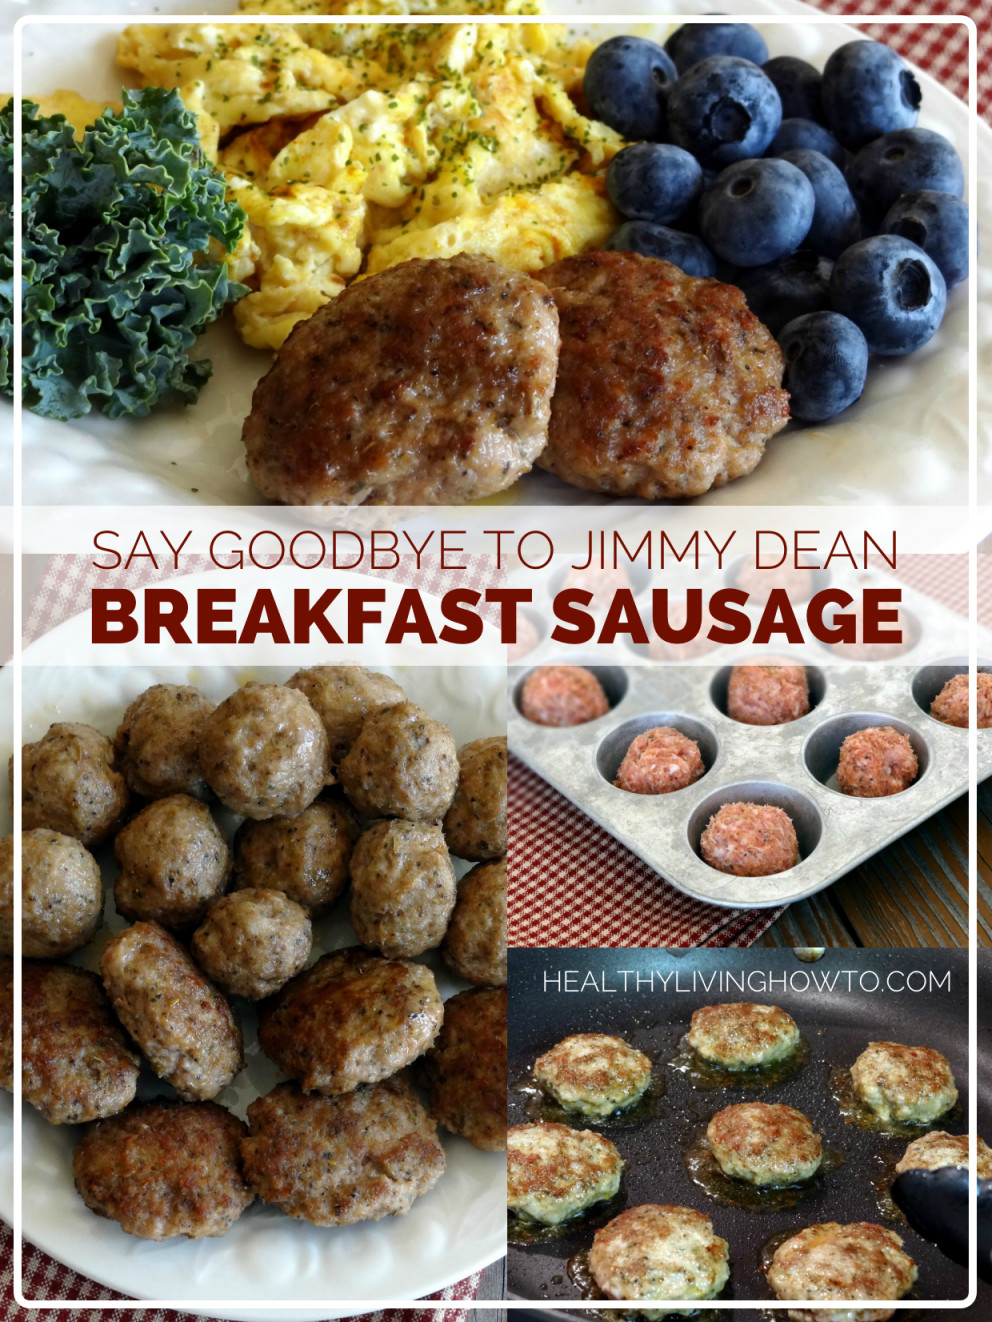 Healthy Breakfast Sausage Recipe  How To Make Healthy Breakfast Sausage